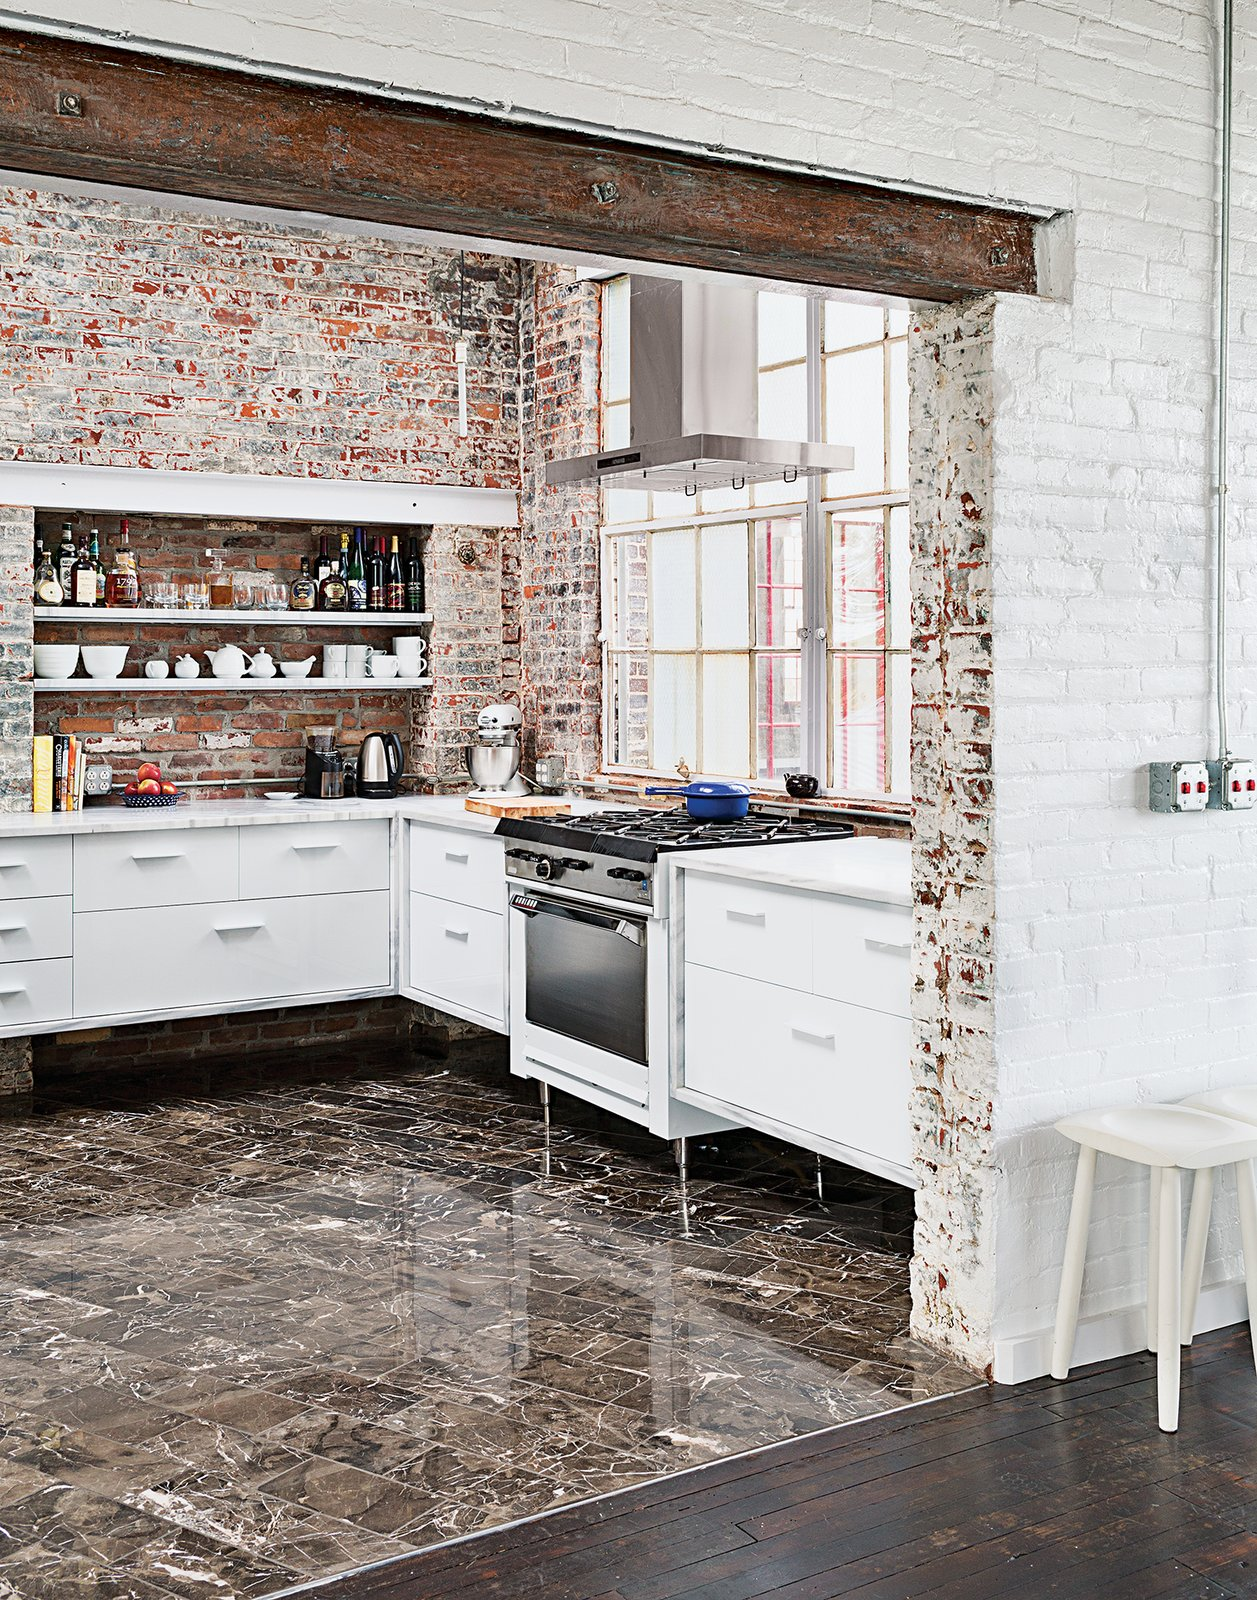 Among the couple's cost-saving measures was outfitting the kitchen with their own custom cabinetry. The brick and windows are original, the Garland stove was a Craigslist find, and the floor tile was found on closeout at a cost of about $1 per square foot.  20+ Modern Warehouse and Garages Conversions by Zachary Edelson from A Design Duo Takes Over A Whole Factory